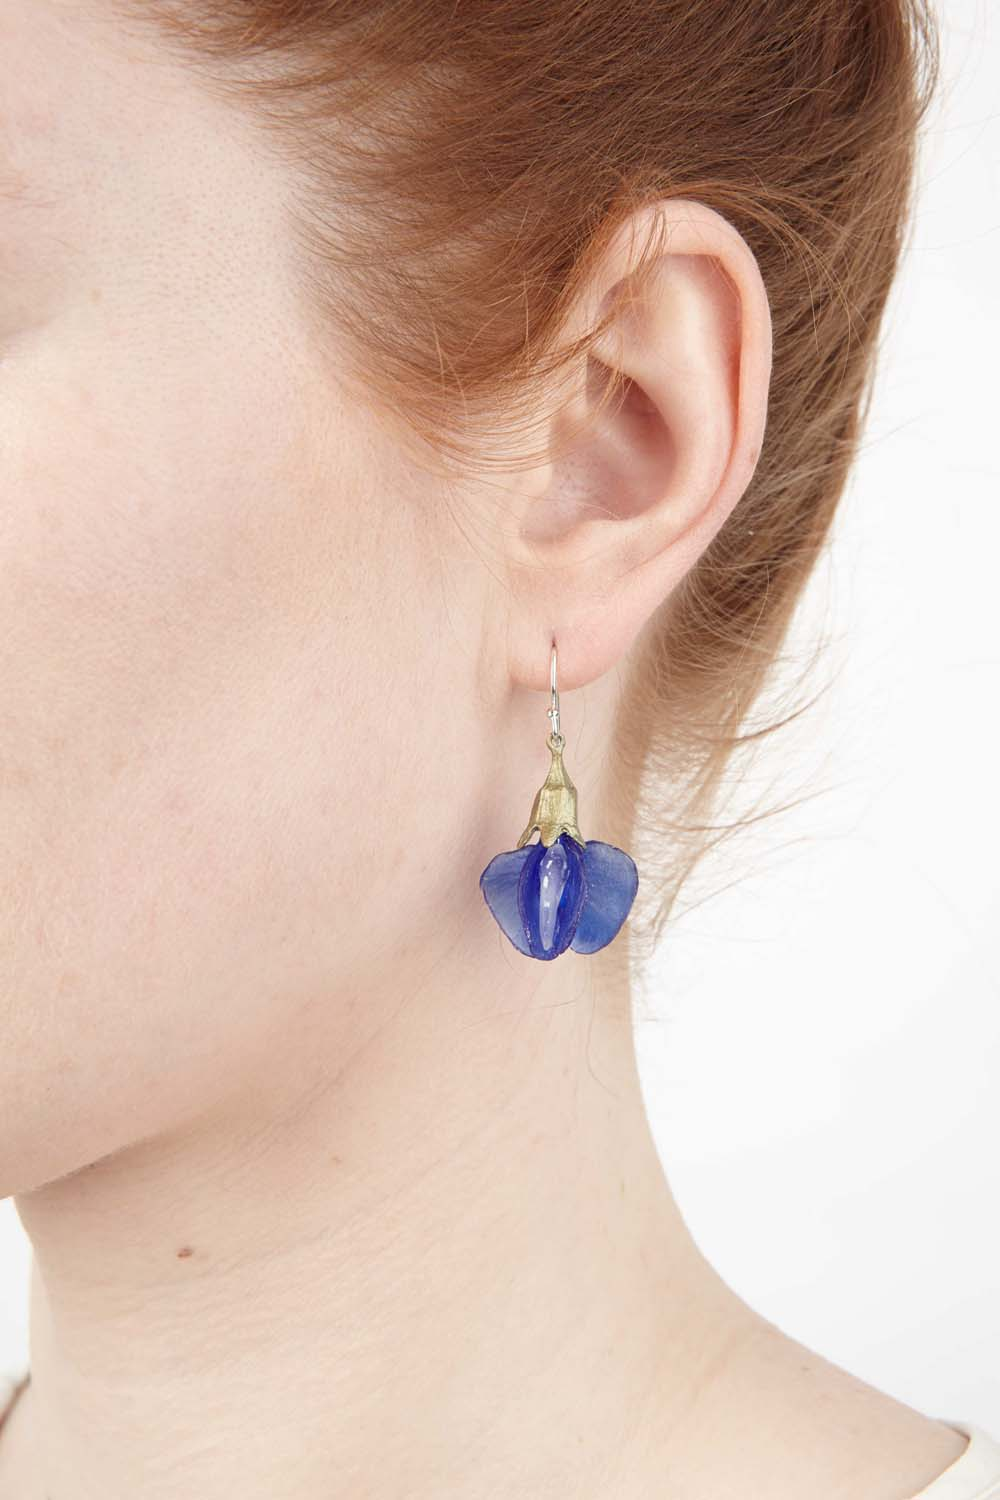 False Indigo Earring - Glass Blossom Wire